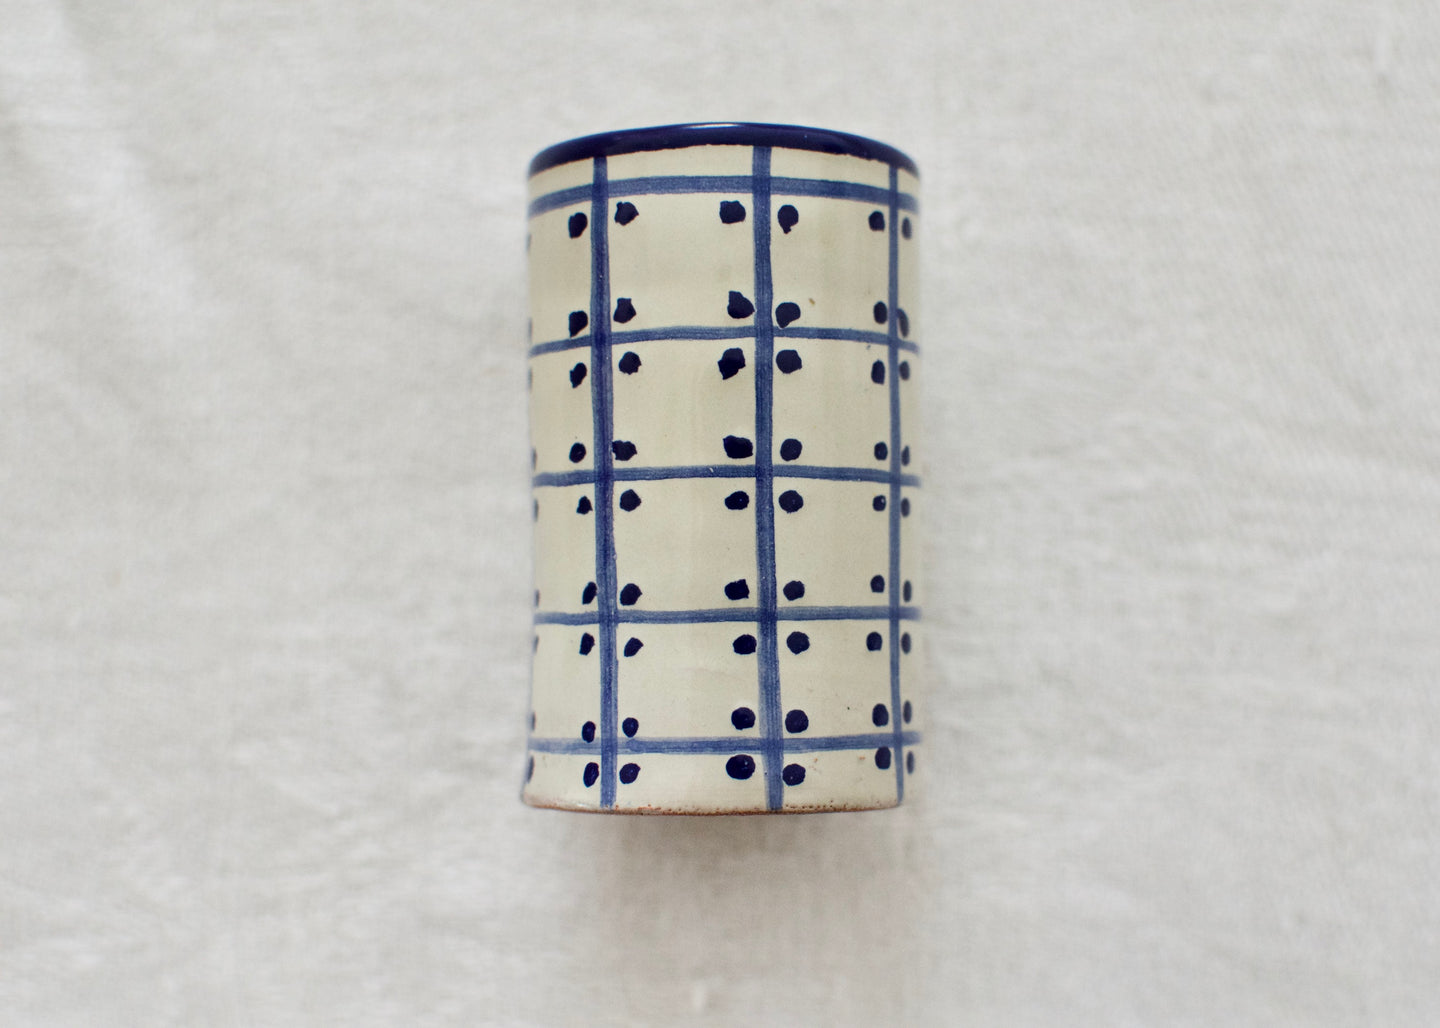 Talavera Tequilero Azul - Small shot glass